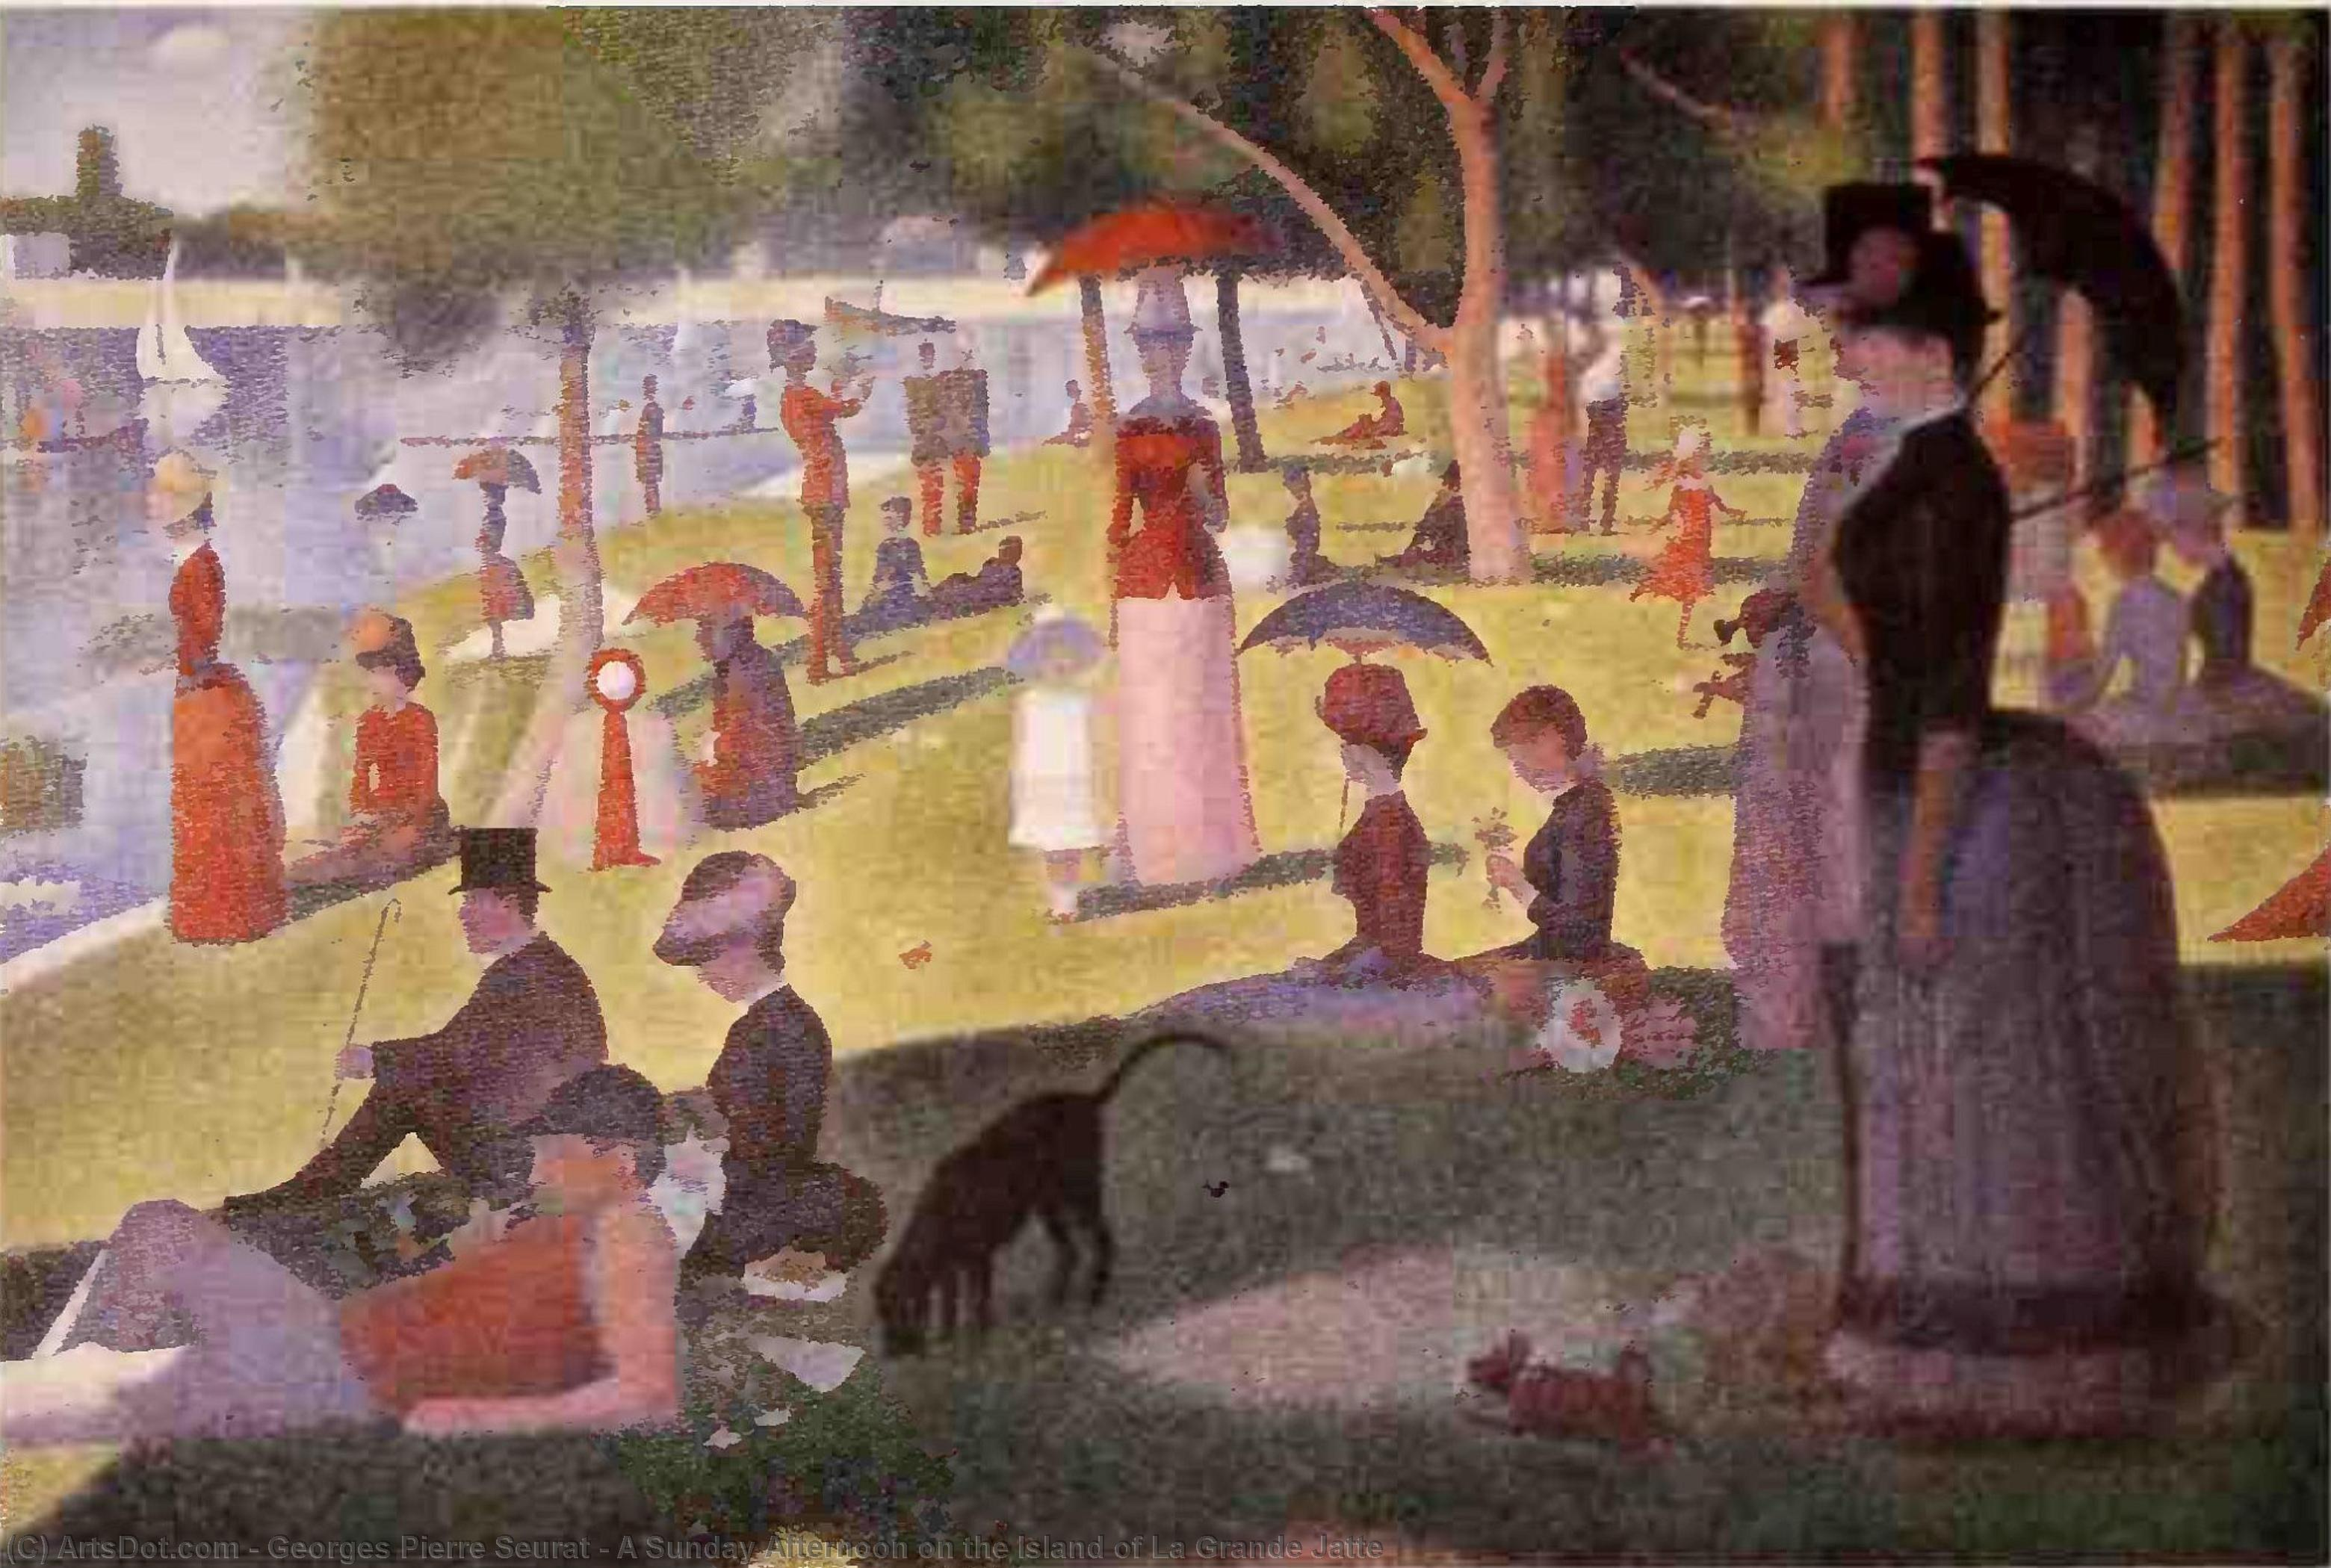 WikiOO.org - Enciclopédia das Belas Artes - Pintura, Arte por Georges Pierre Seurat - A Sunday Afternoon on the Island of La Grande Jatte